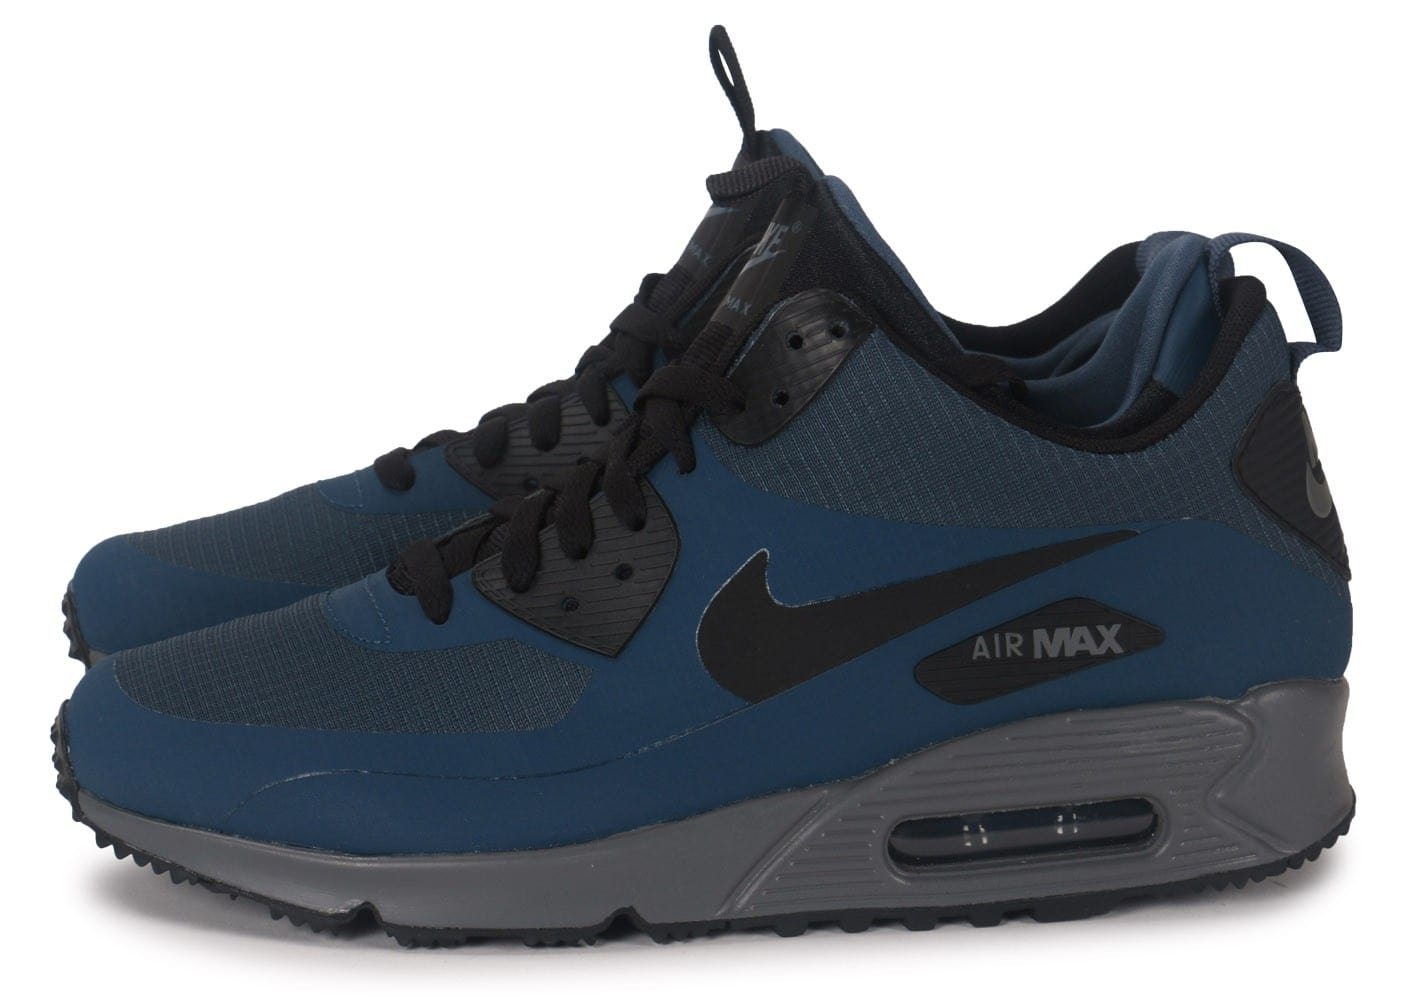 Baskets 90 Winter Mid Chausport Homme Bleu Chaussures Nike Max Air BdoWCrxe